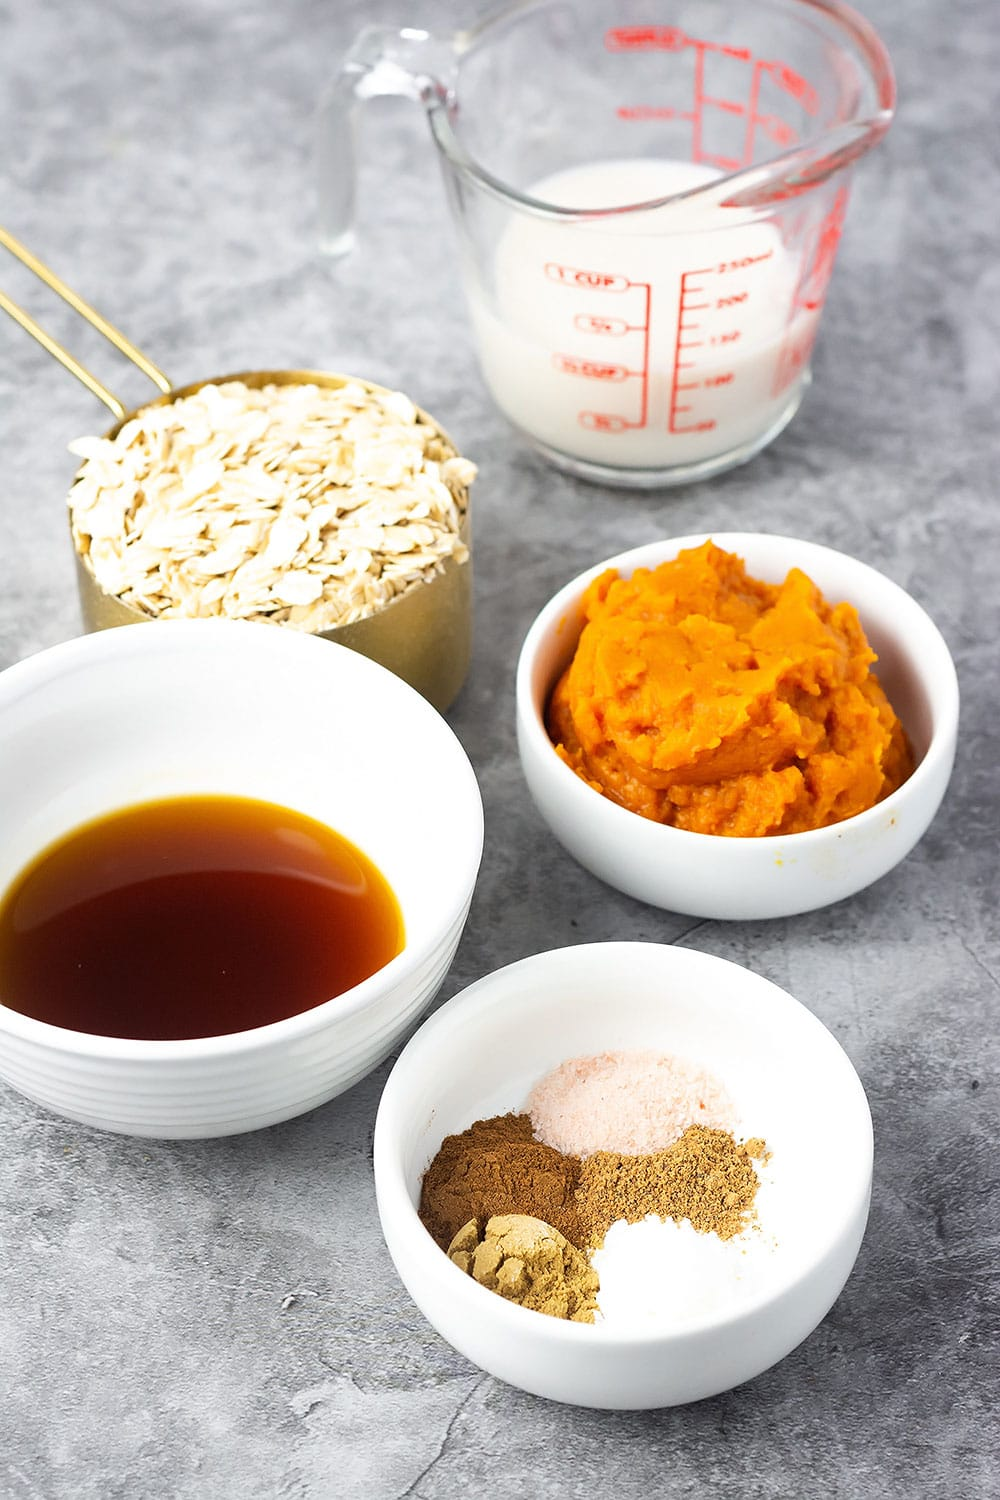 Ingredients for vegan pumpkin pancakes